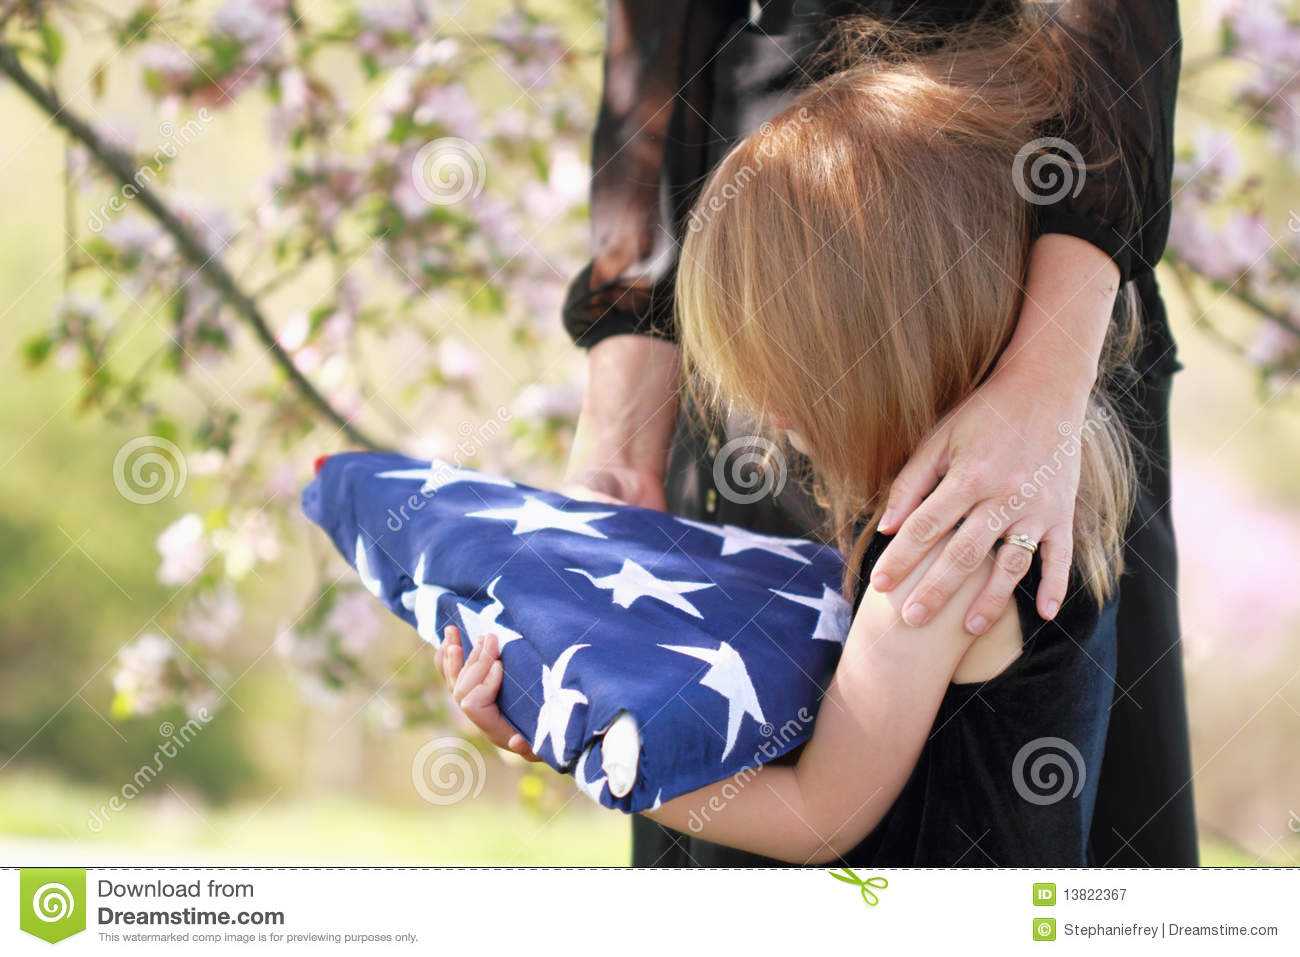 Child Holding a Parent s Folded American Flag